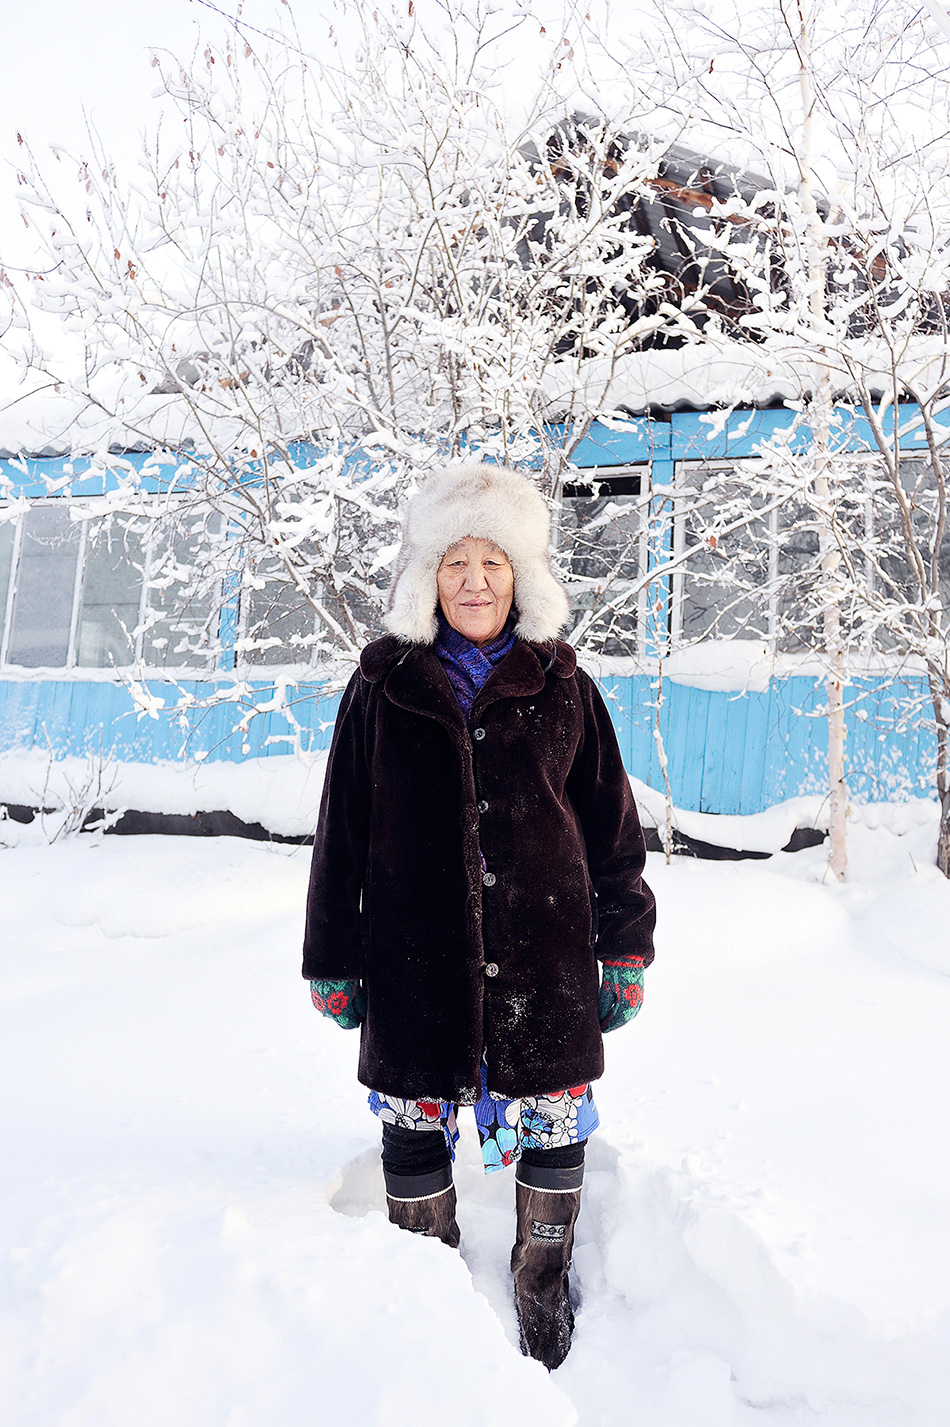 Yakutian winter